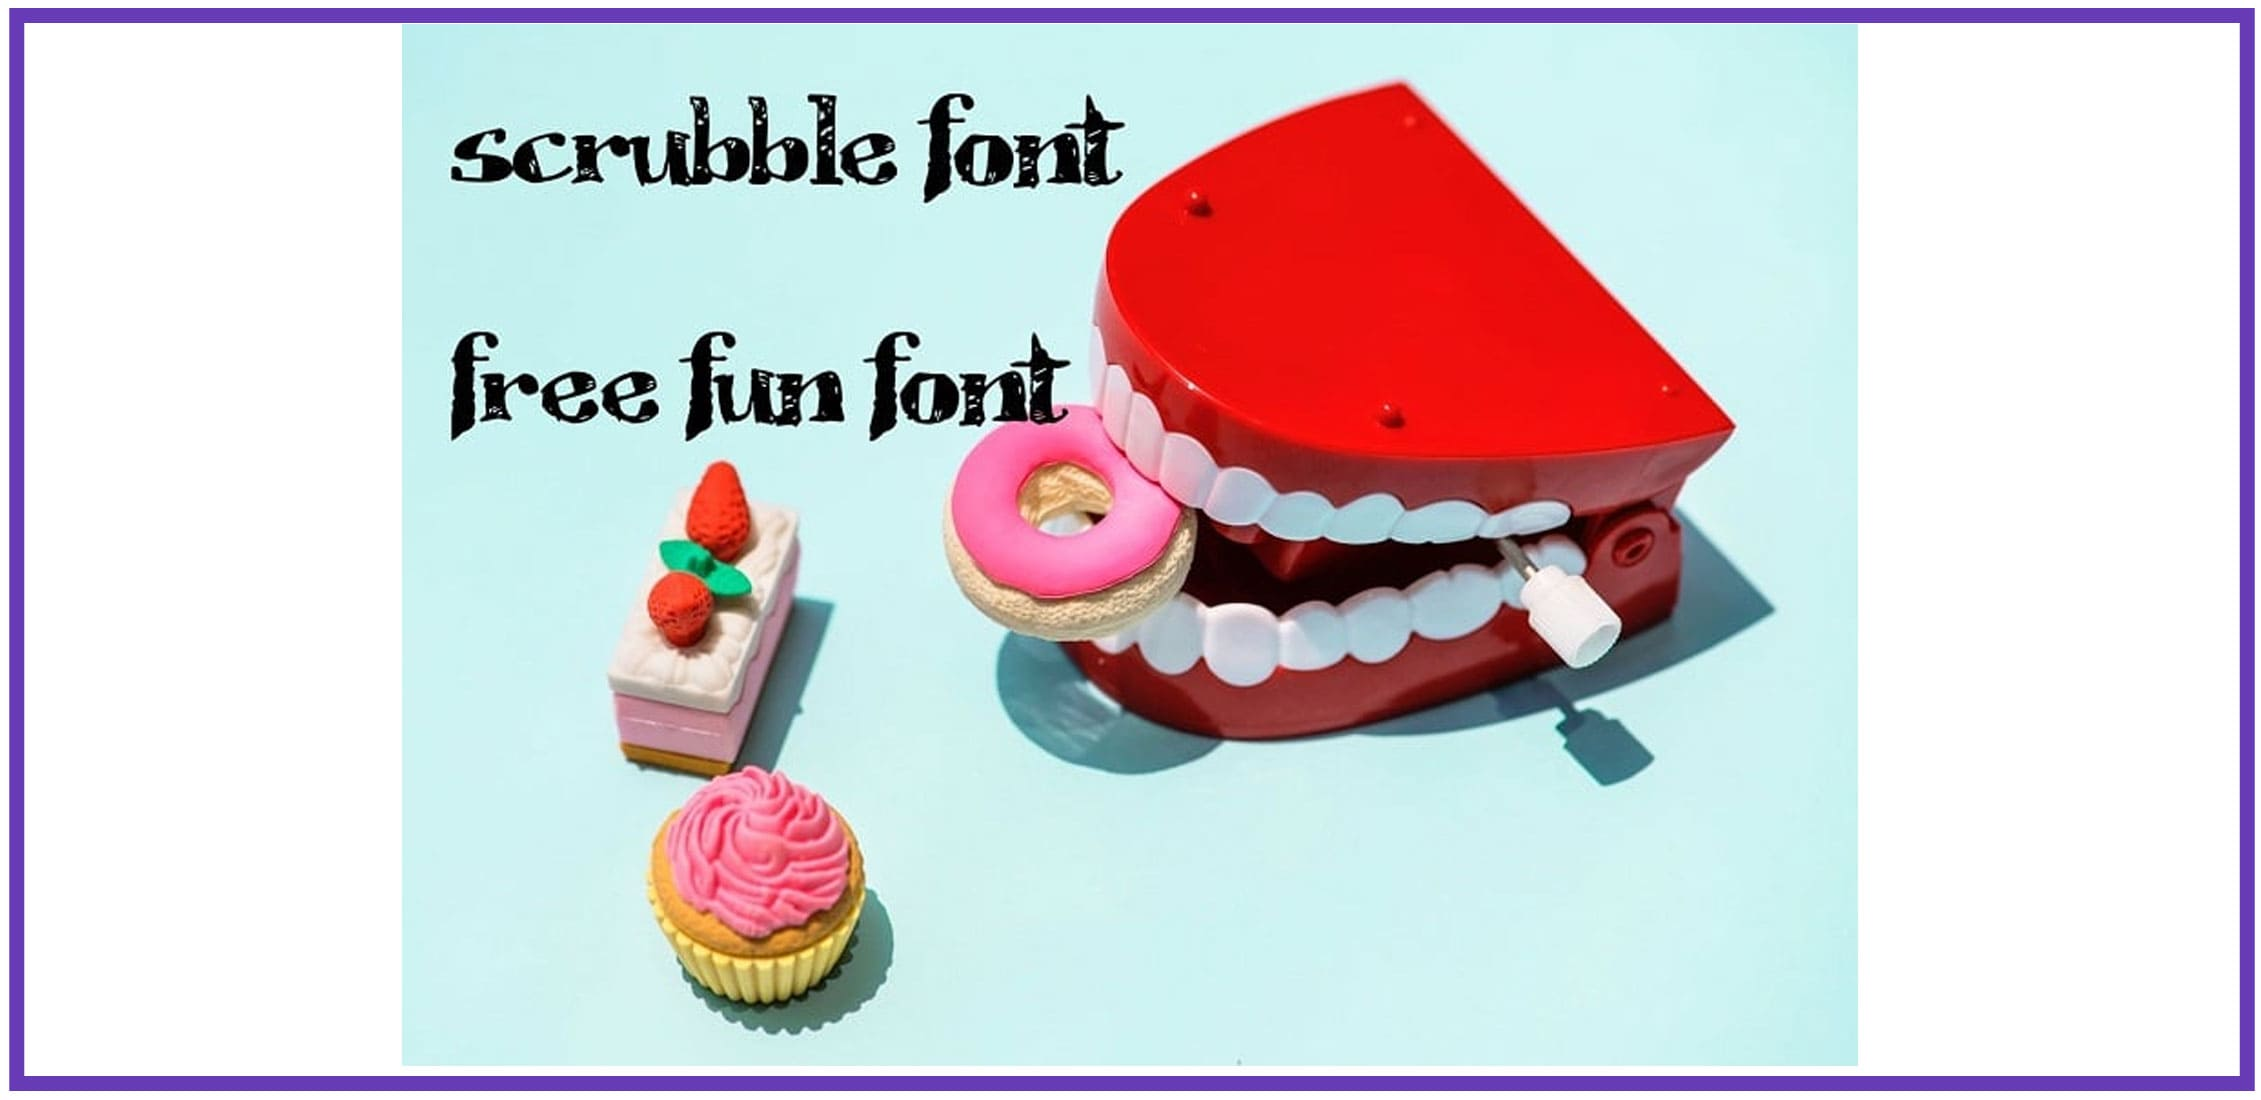 Red toy jaw with toy pastries and a display fun font.